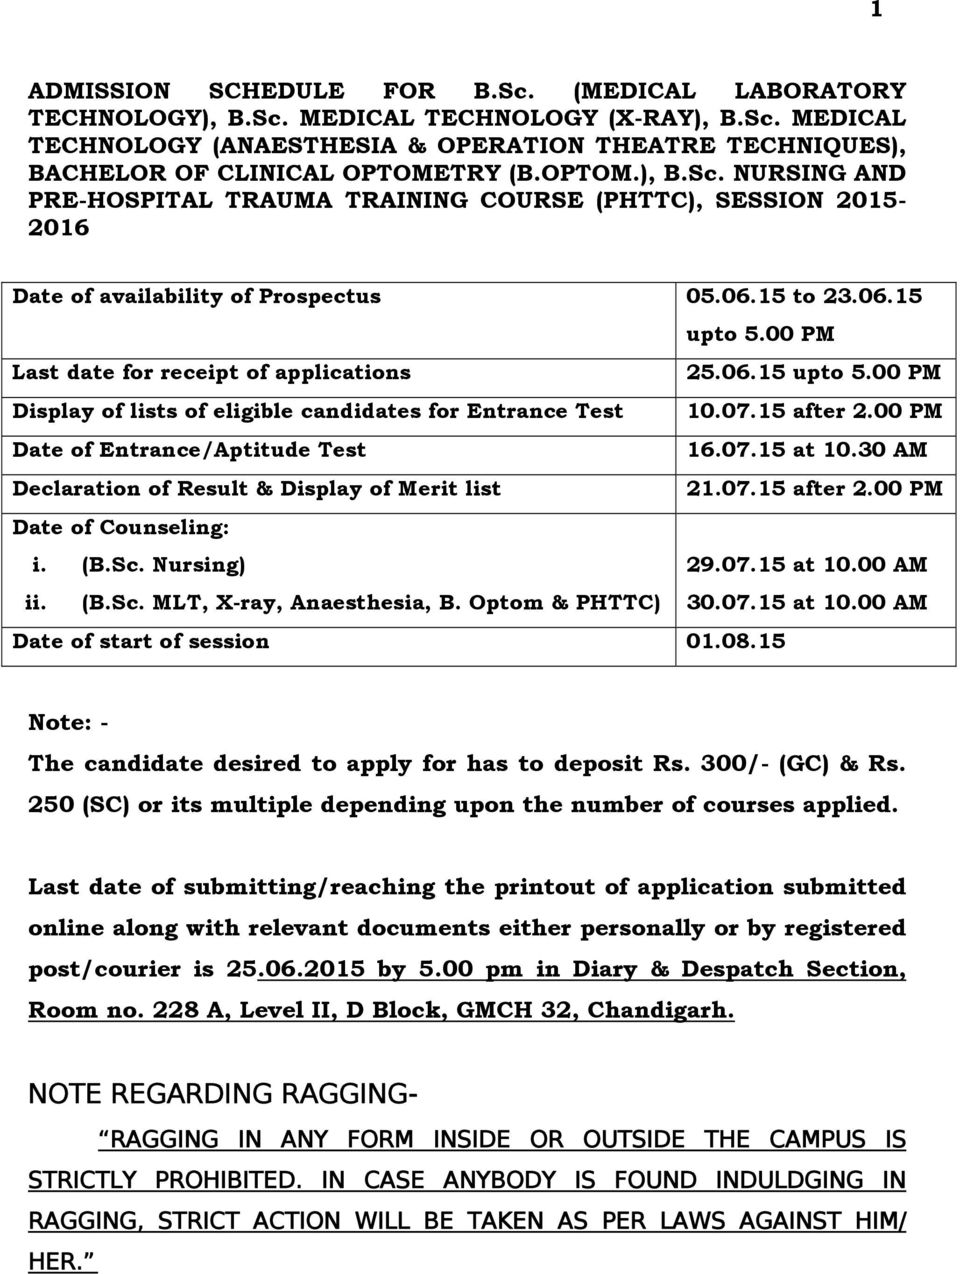 06.15 upto 5.00 PM Display of lists of eligible candidates for Entrance Test 10.07.15 after 2.00 PM Date of Entrance/Aptitude Test 16.07.15 at 10.